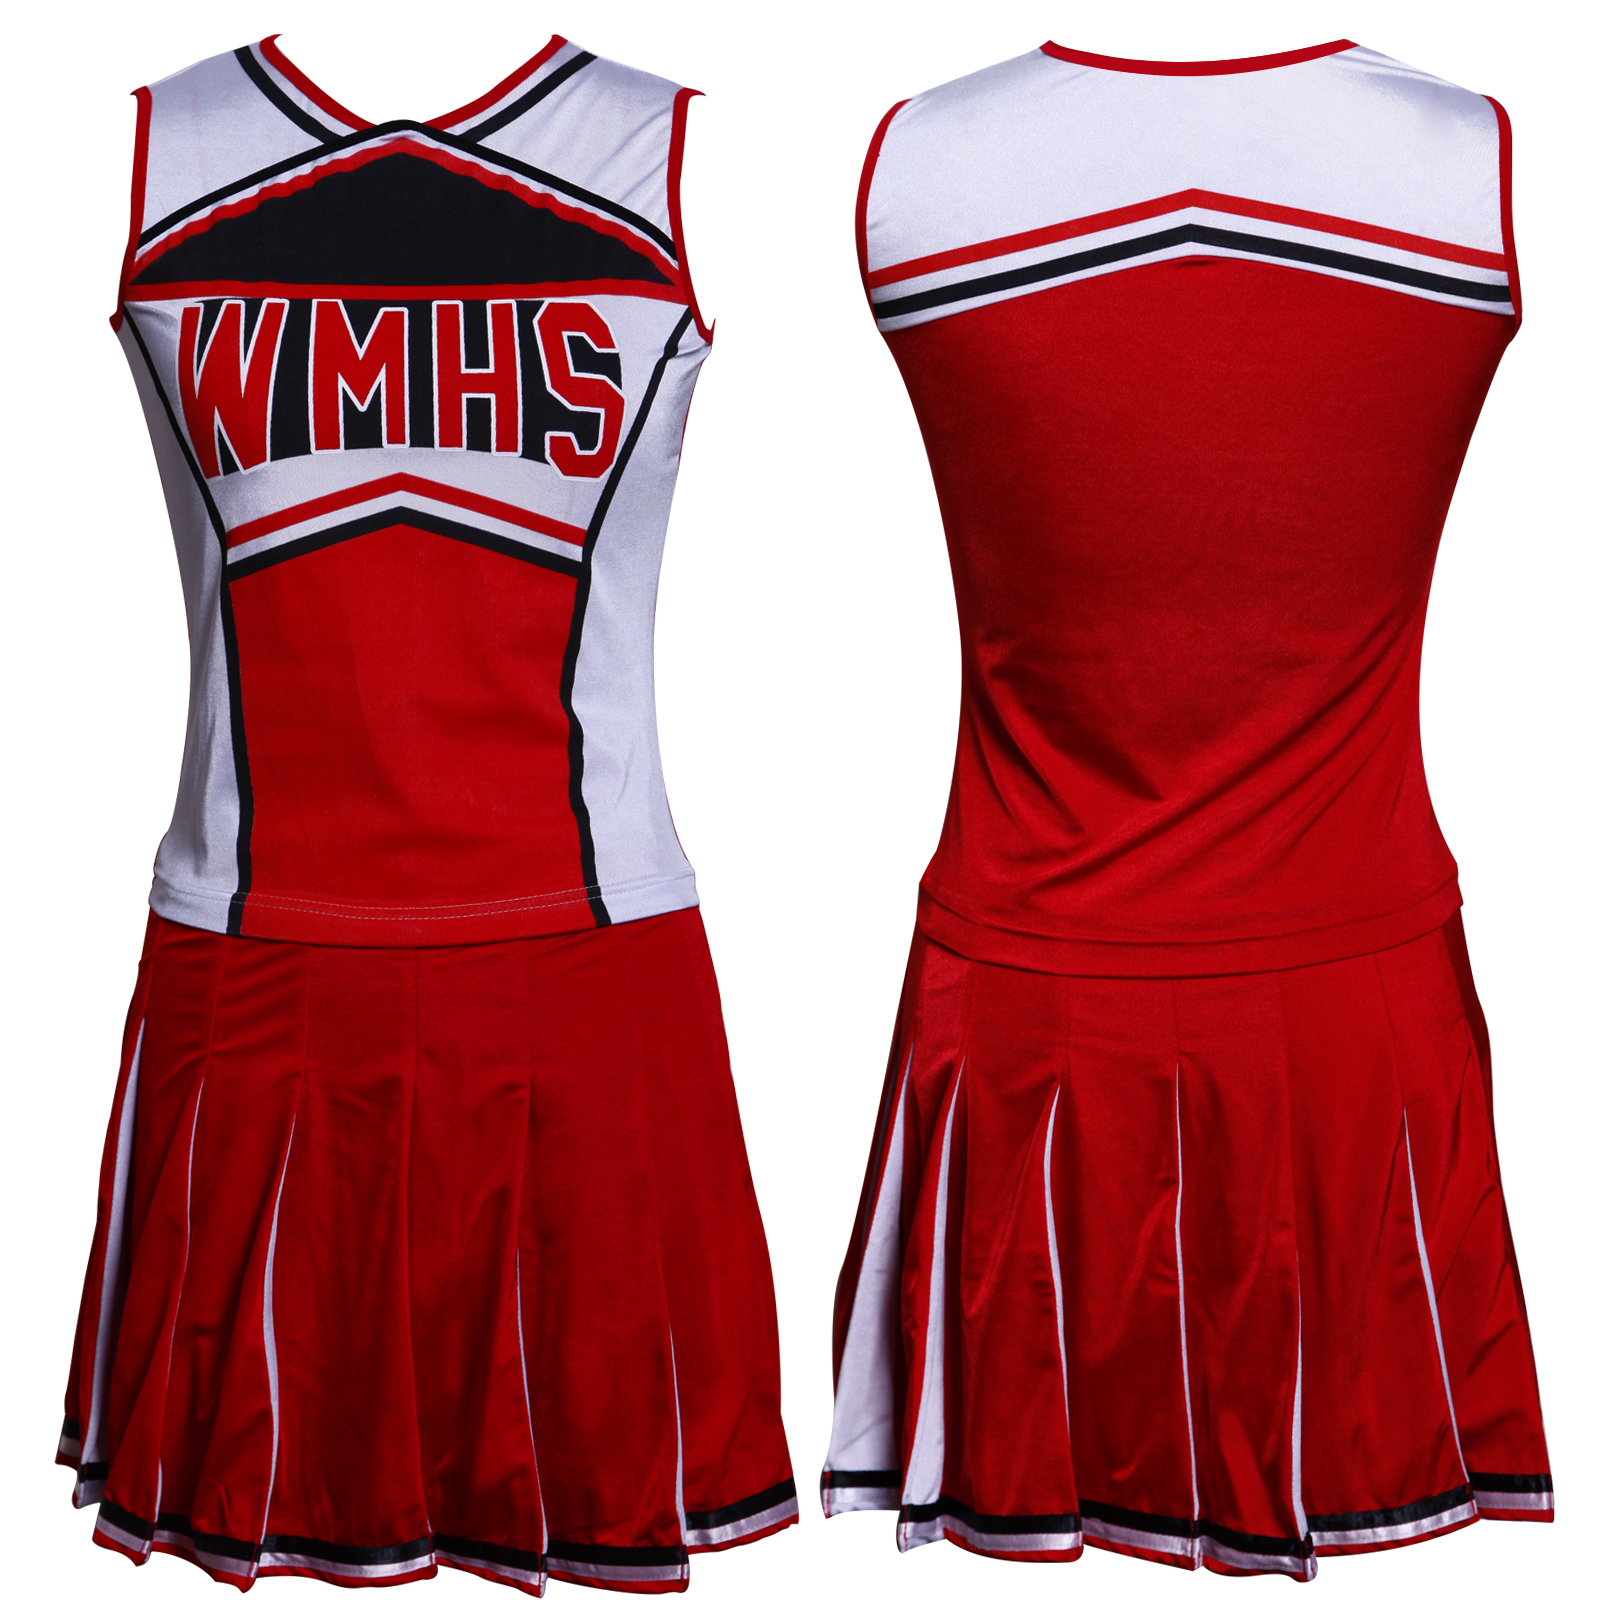 Glee cheerleader clothes skirt high school cheerleading costumes 6 8 item specifics solutioingenieria Images